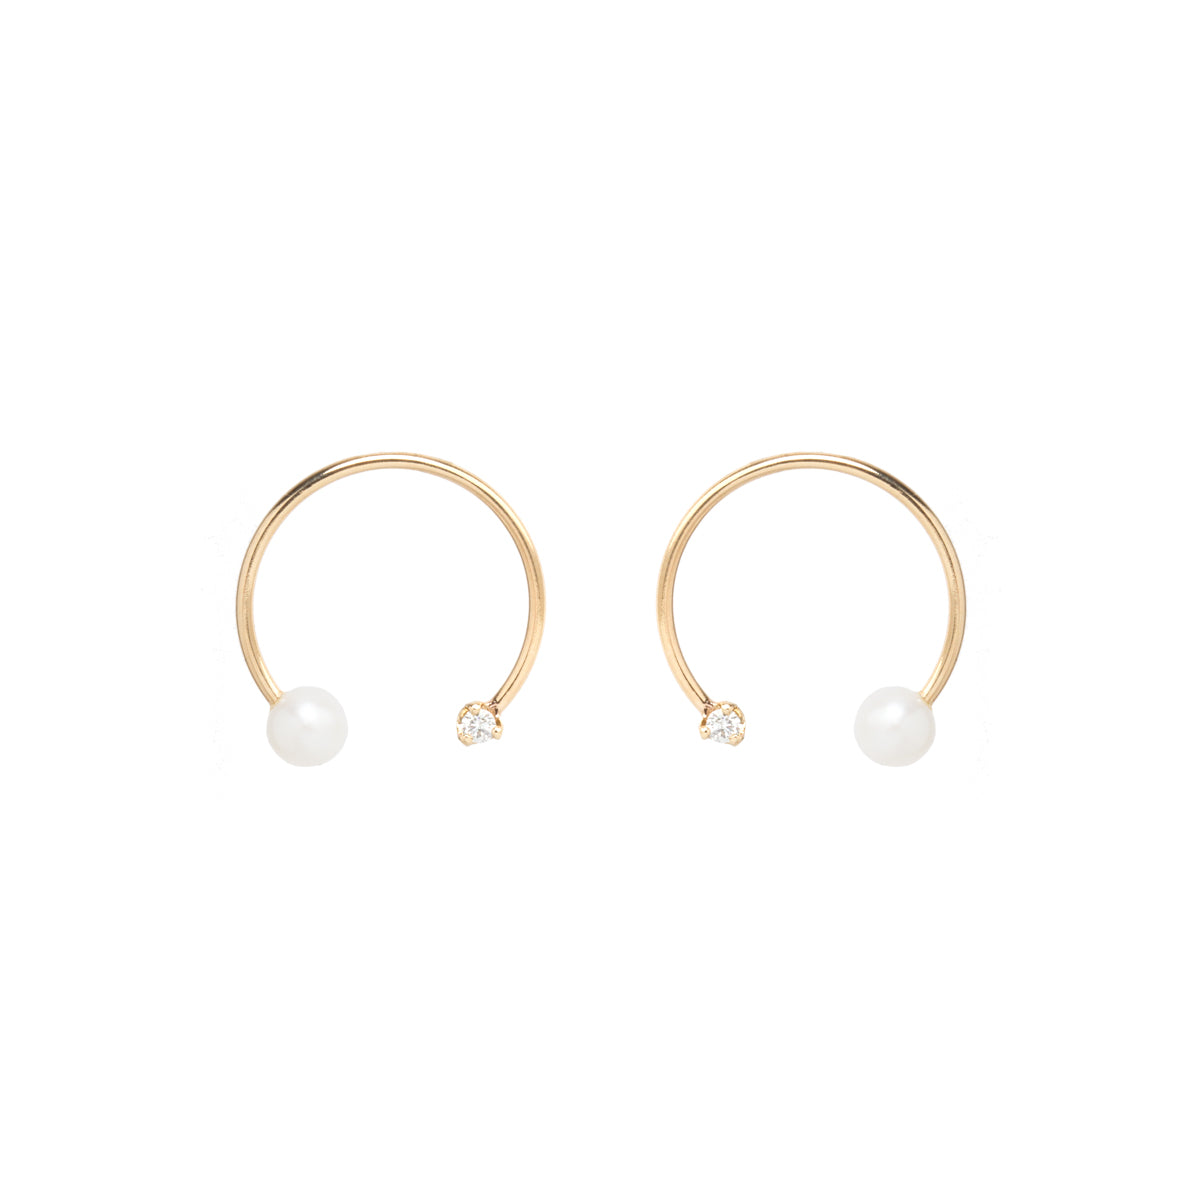 14k open circle earrings with pearls and diamonds